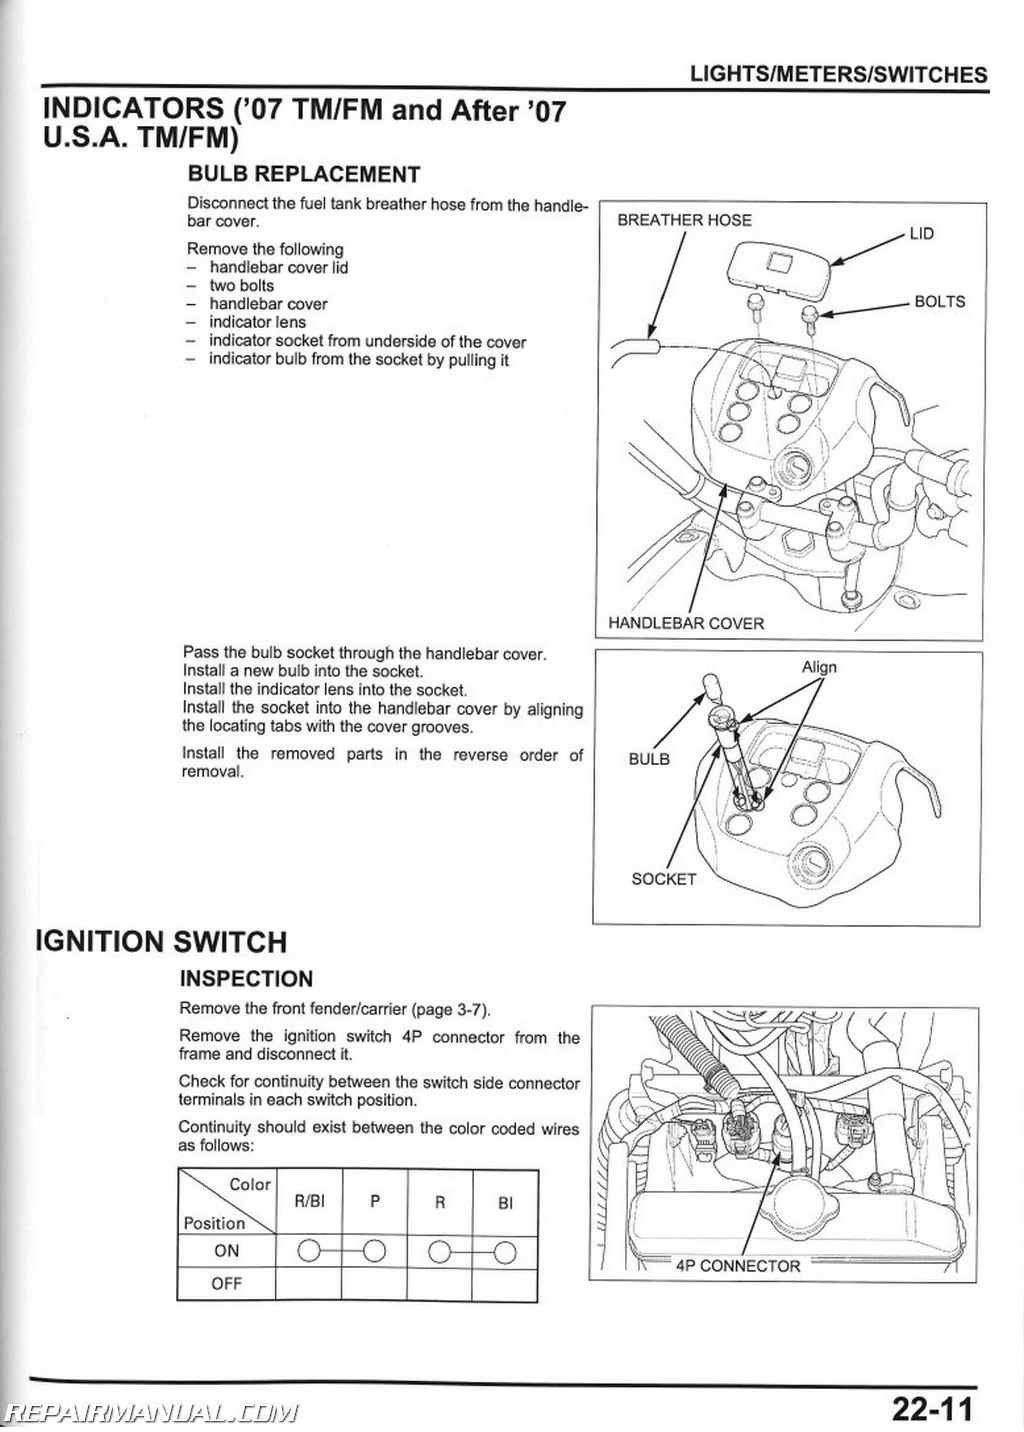 [SCHEMATICS_48EU]  2013 Honda 420 Rancher Wiring Diagram. honda atv 2013 oem parts diagram for  wire harness. honda trx420fe fourtrax rancher 4x4 es 2013 f 31 wire. honda  atv 2013 oem parts diagram for | Honda Atv Ignition Switch Wiring Diagram |  | A.2002-acura-tl-radio.info. All Rights Reserved.